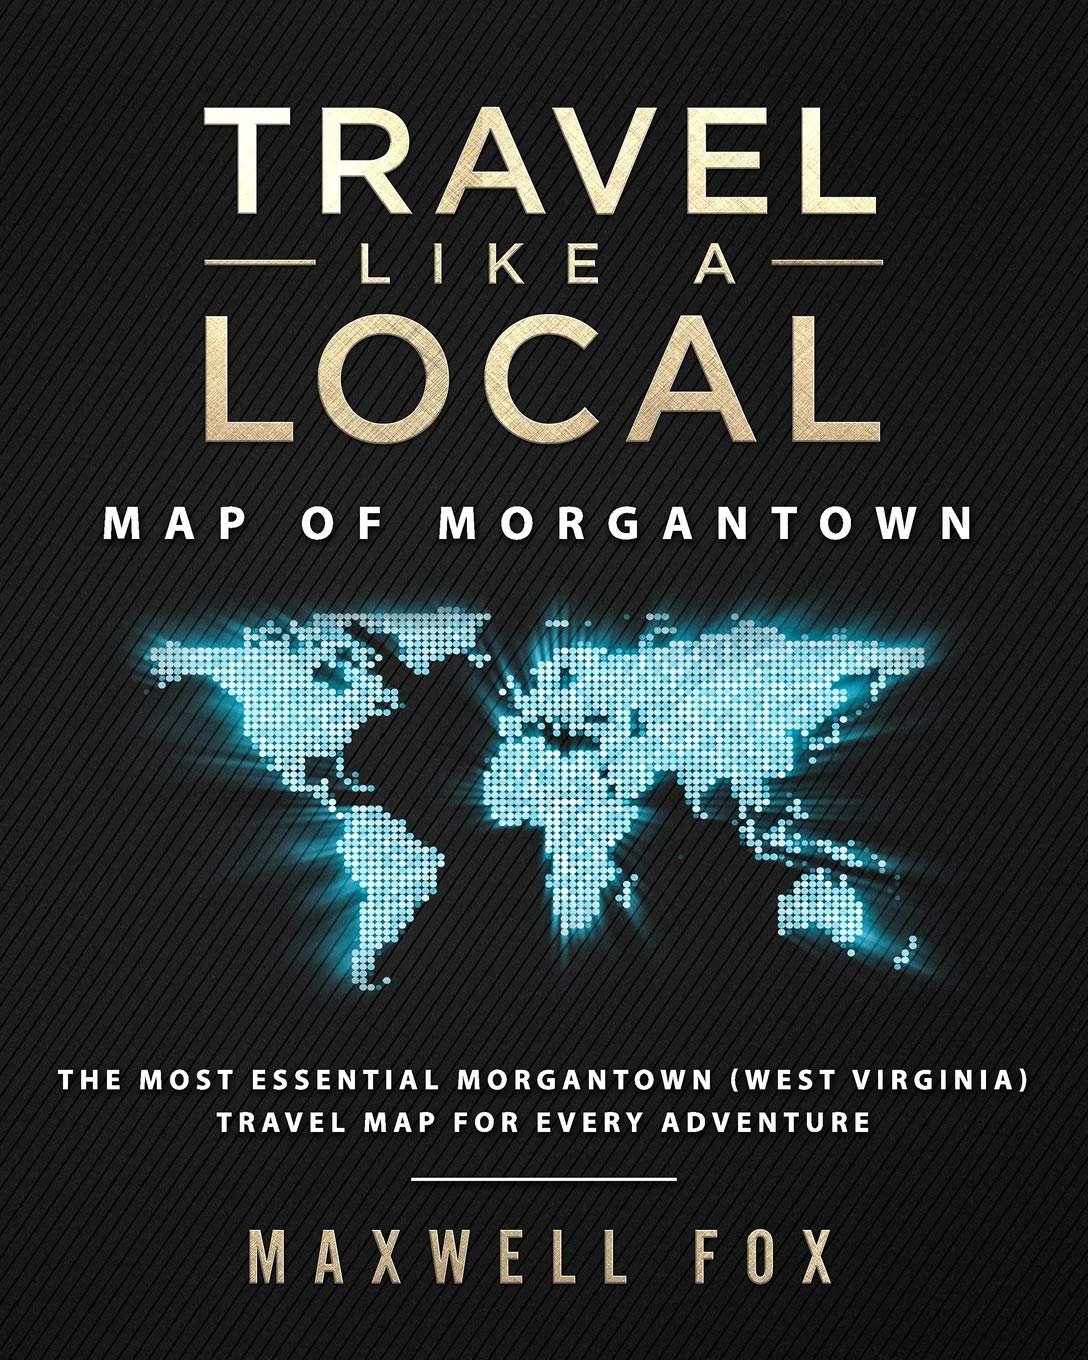 Download Travel Like a Local - Map of Morgantown West: The Most Essential Morgantown West (Virginia) Travel Map for Every Adventure PDF